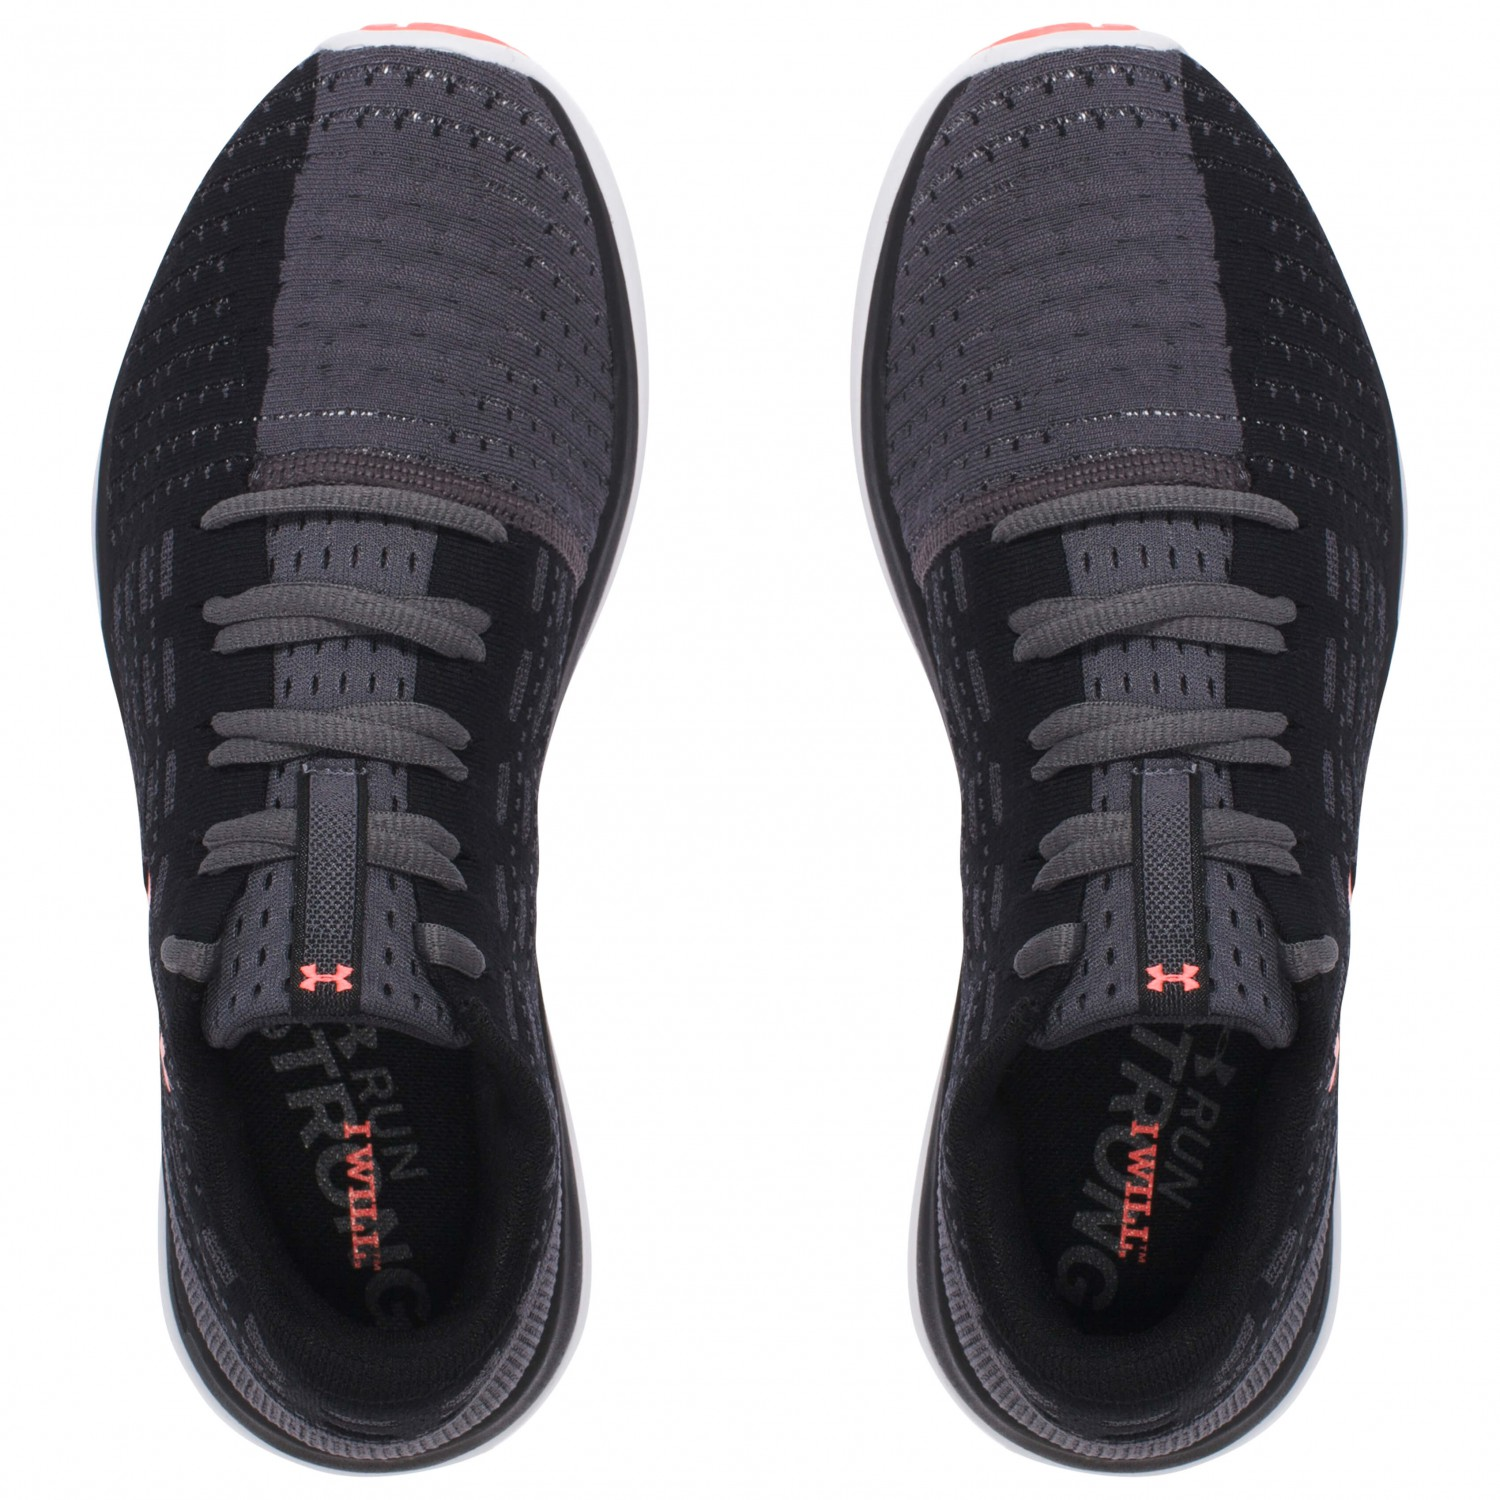 Cheap under armour black trainers Buy